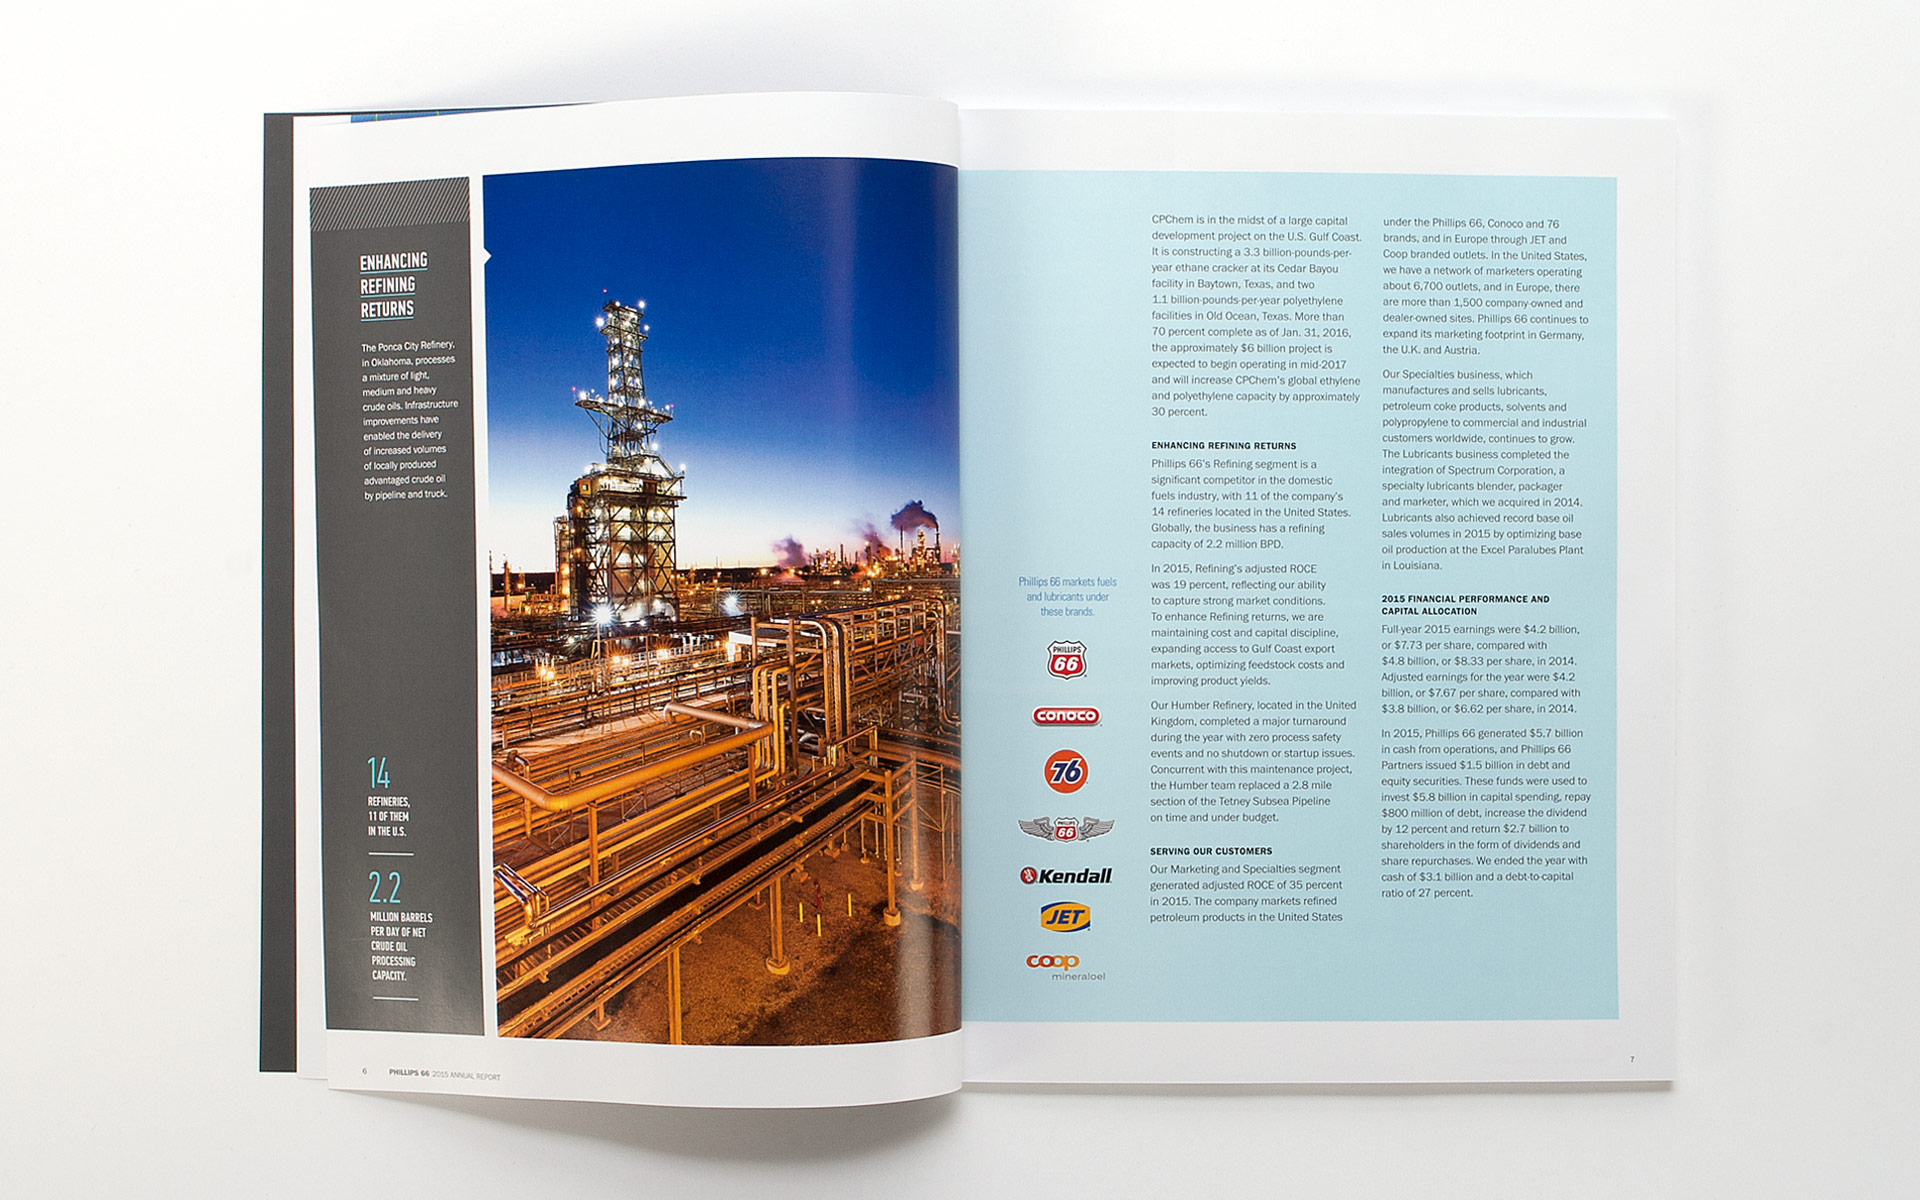 Phillips 66 2015 Annual Report spread 4